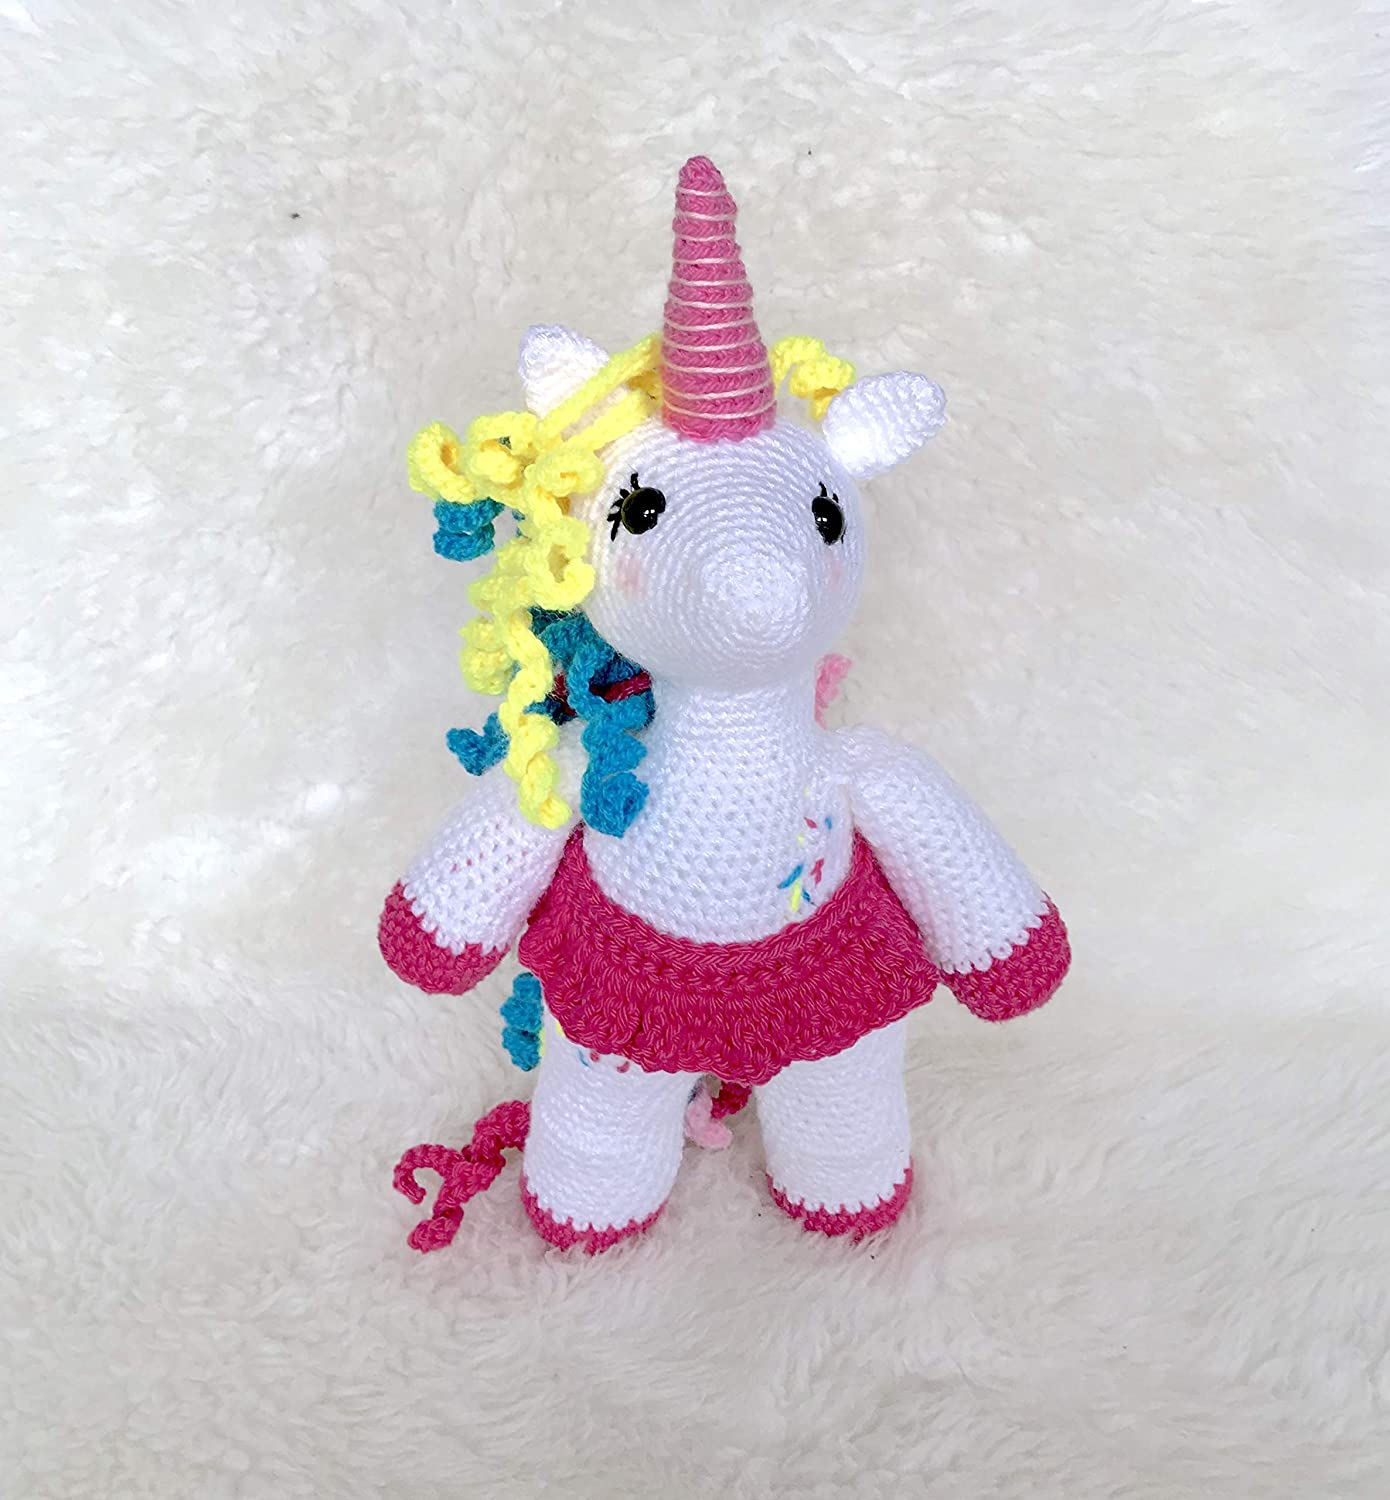 Unicorn Birthday Gift Stuffed Animal Baby Shower Gift Plush White Pink Yellow and Blue